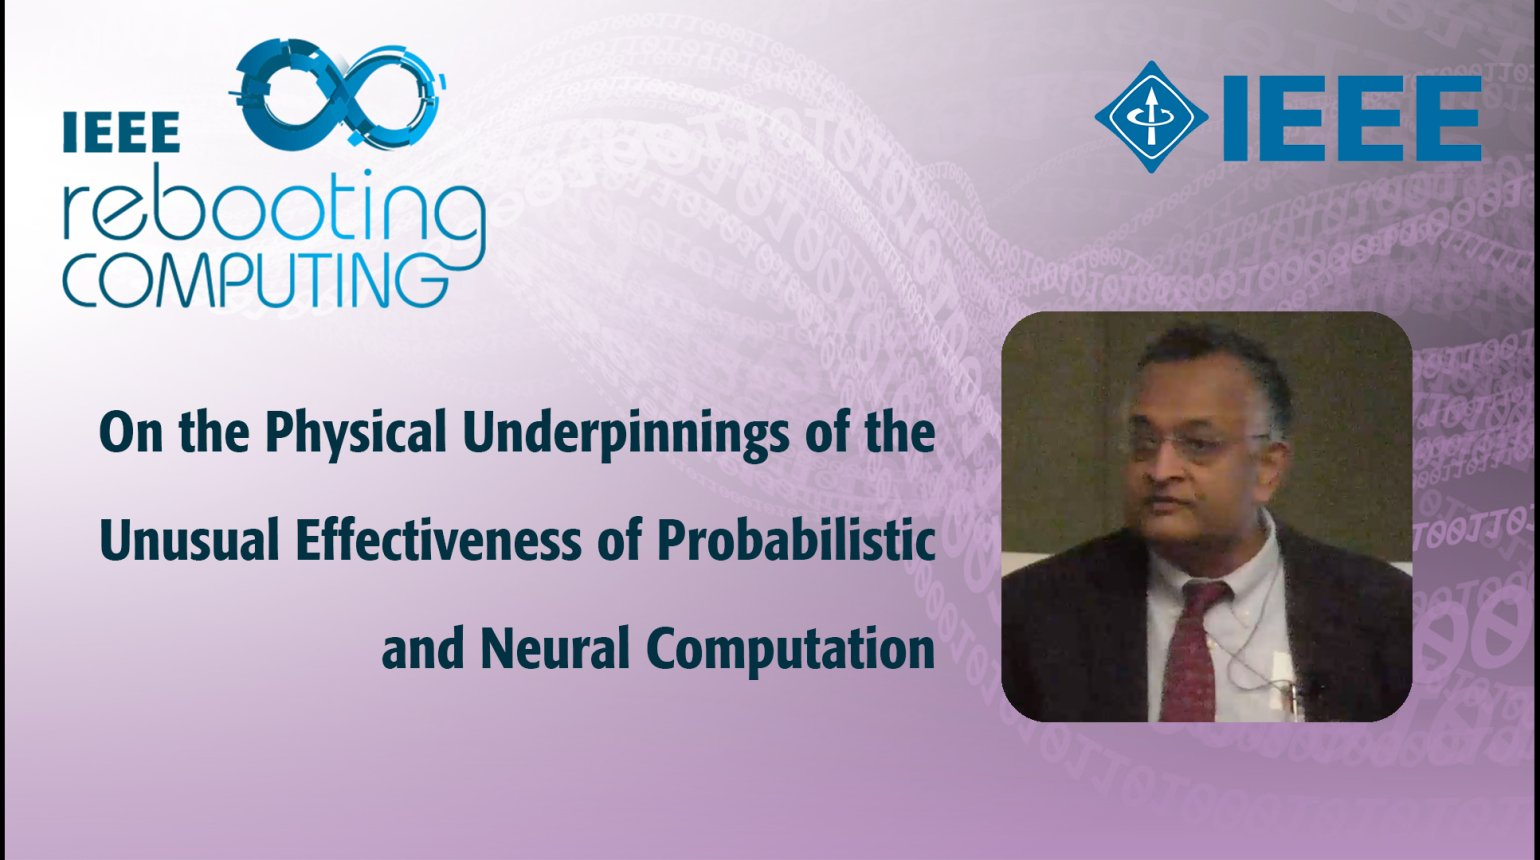 On the Physical Underpinnings of the Unusual Effectiveness of Probabilistic and Neural Computation - IEEE Rebooting Computing 2017